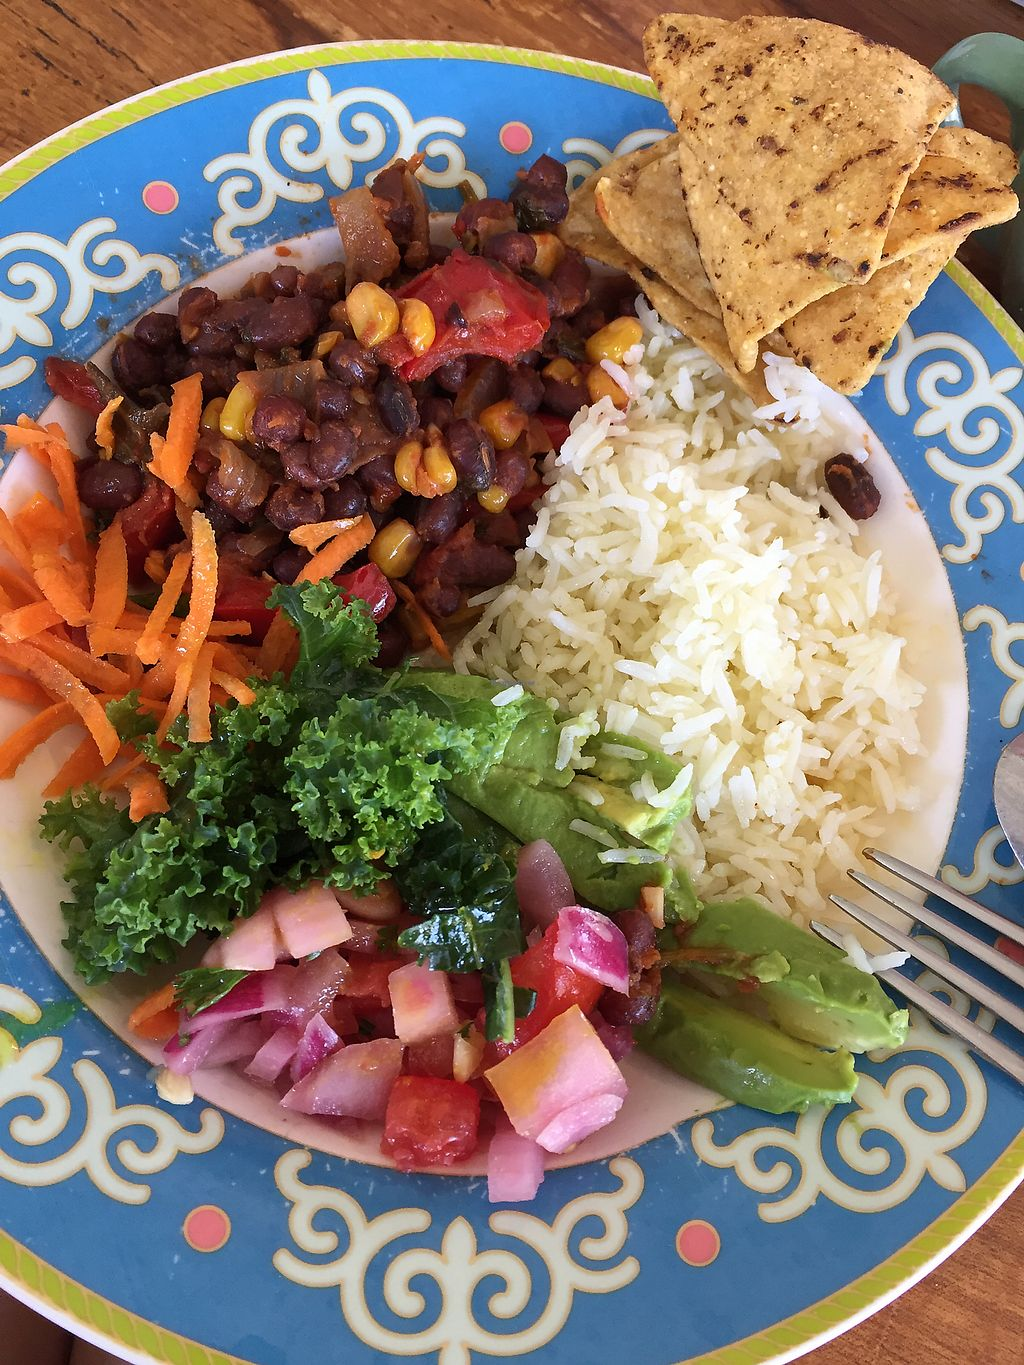 "Photo of Little Frog Cafe and Store  by <a href=""/members/profile/AnnaEmi"">AnnaEmi</a> <br/>Mexican Bowl <br/> January 27, 2018  - <a href='/contact/abuse/image/65036/351591'>Report</a>"